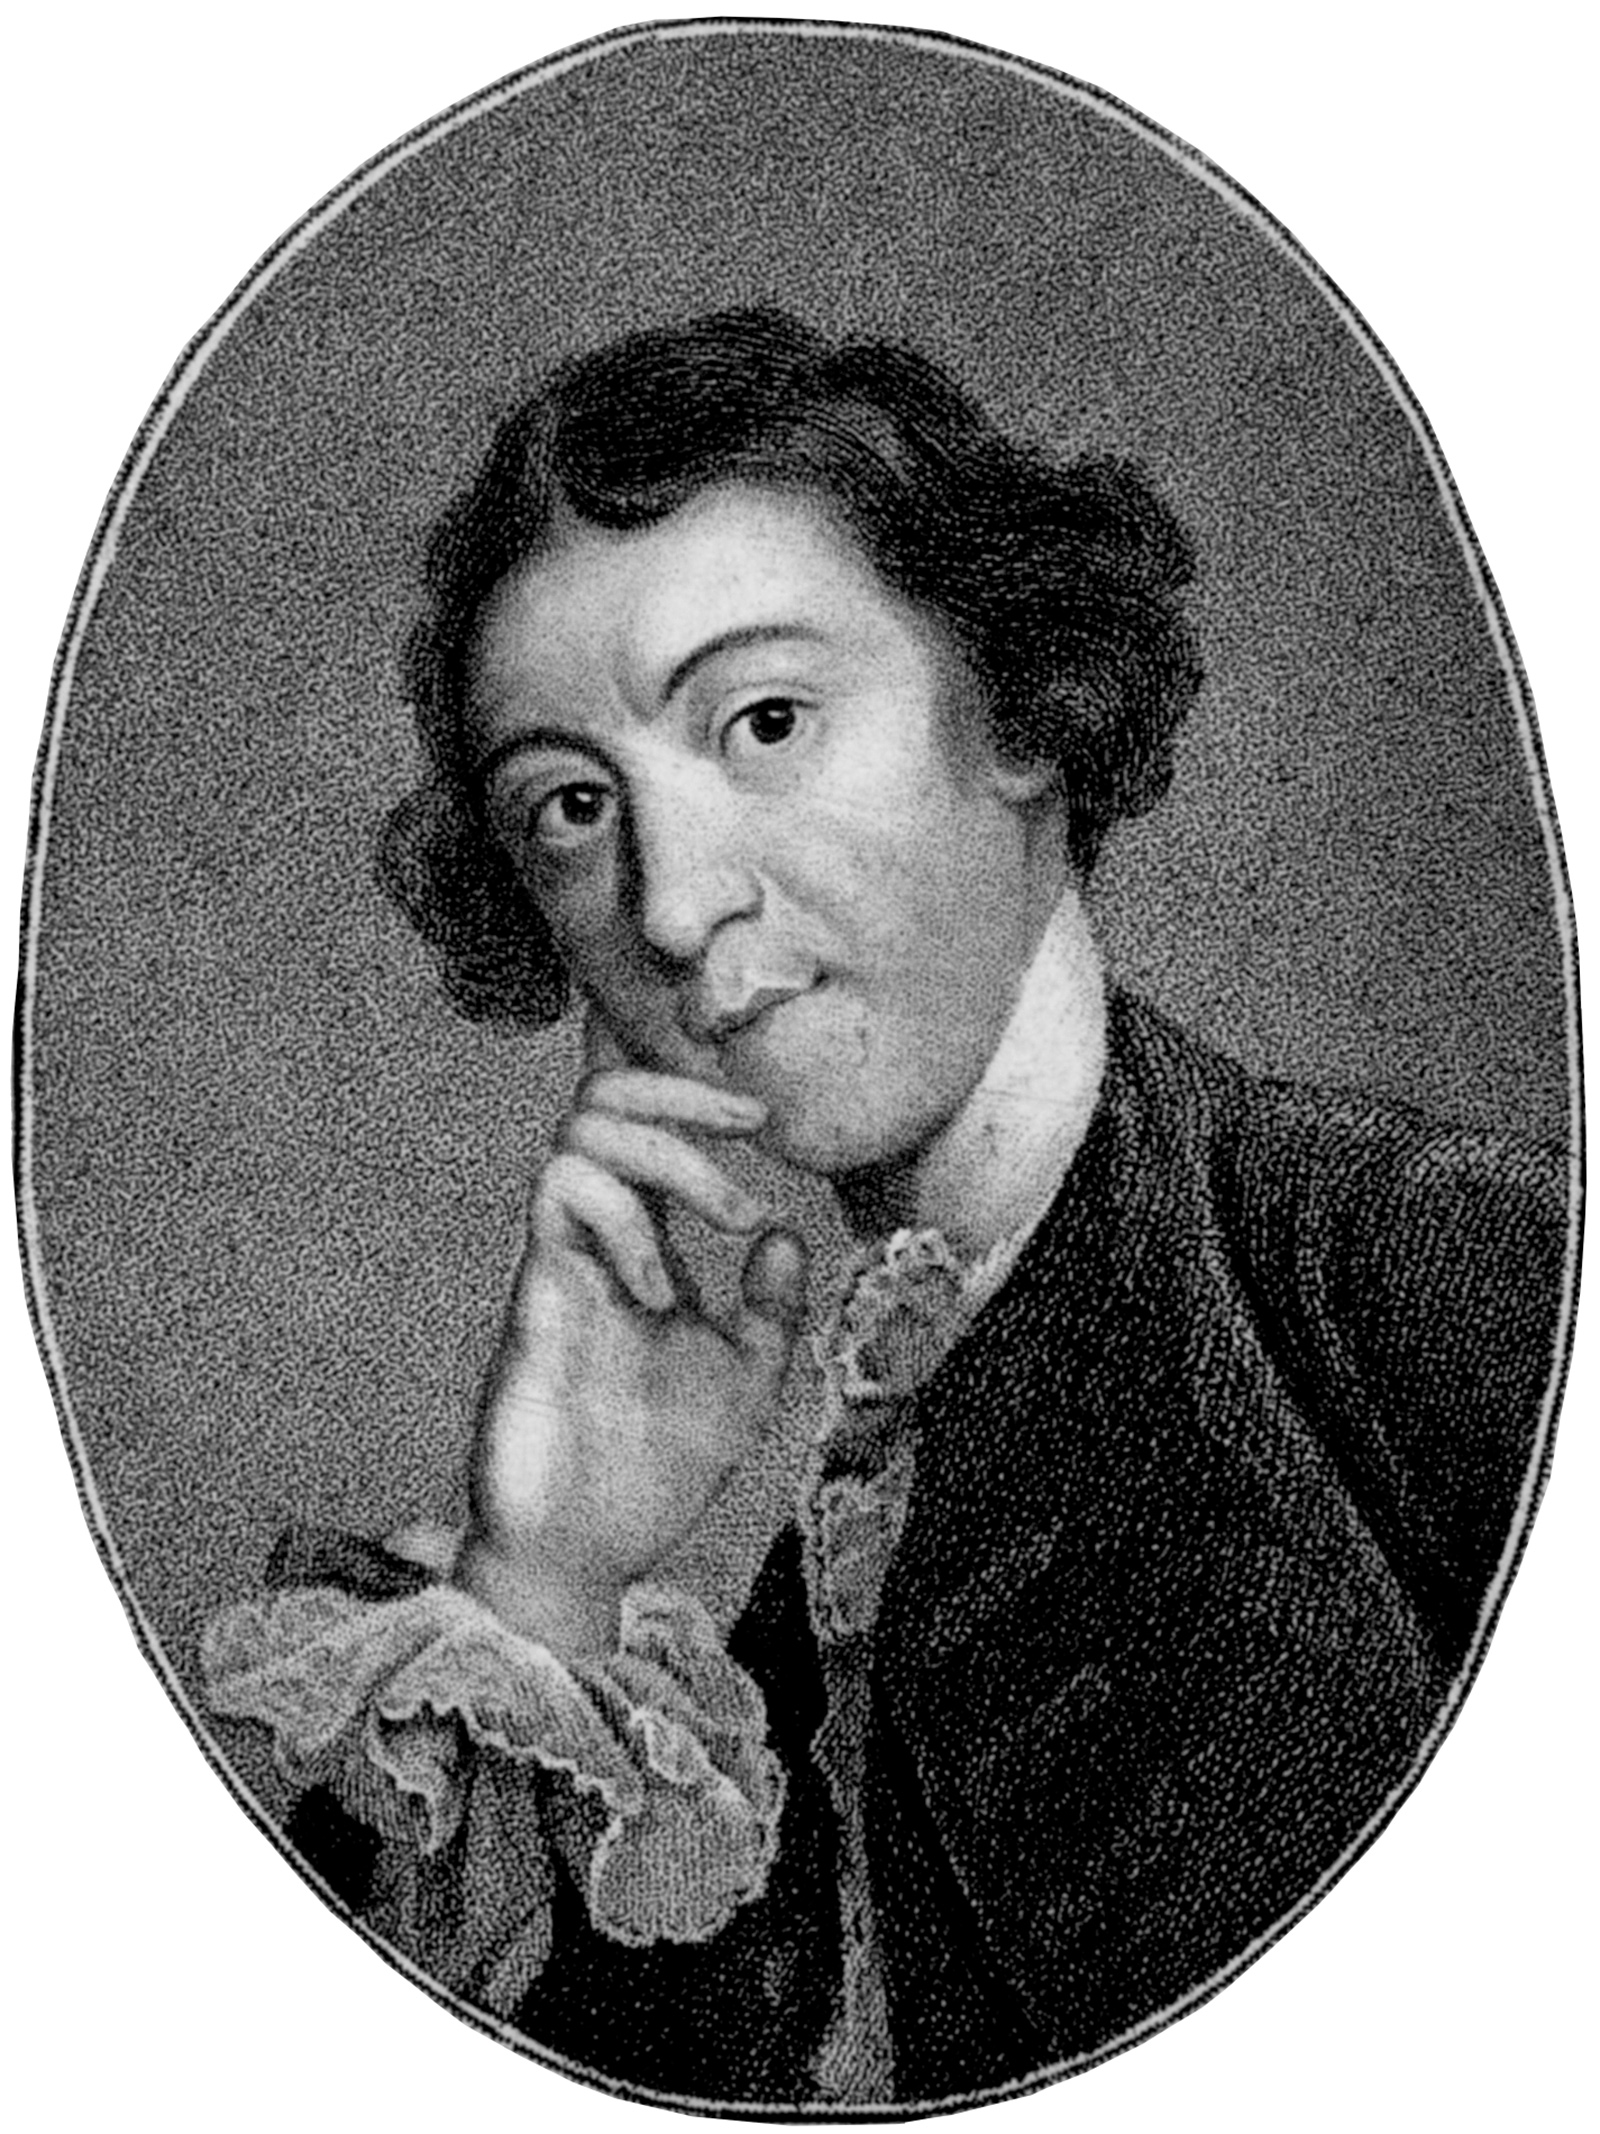 Horace Walpole, circa 1751; engraving after a painting by Joshua Reynolds